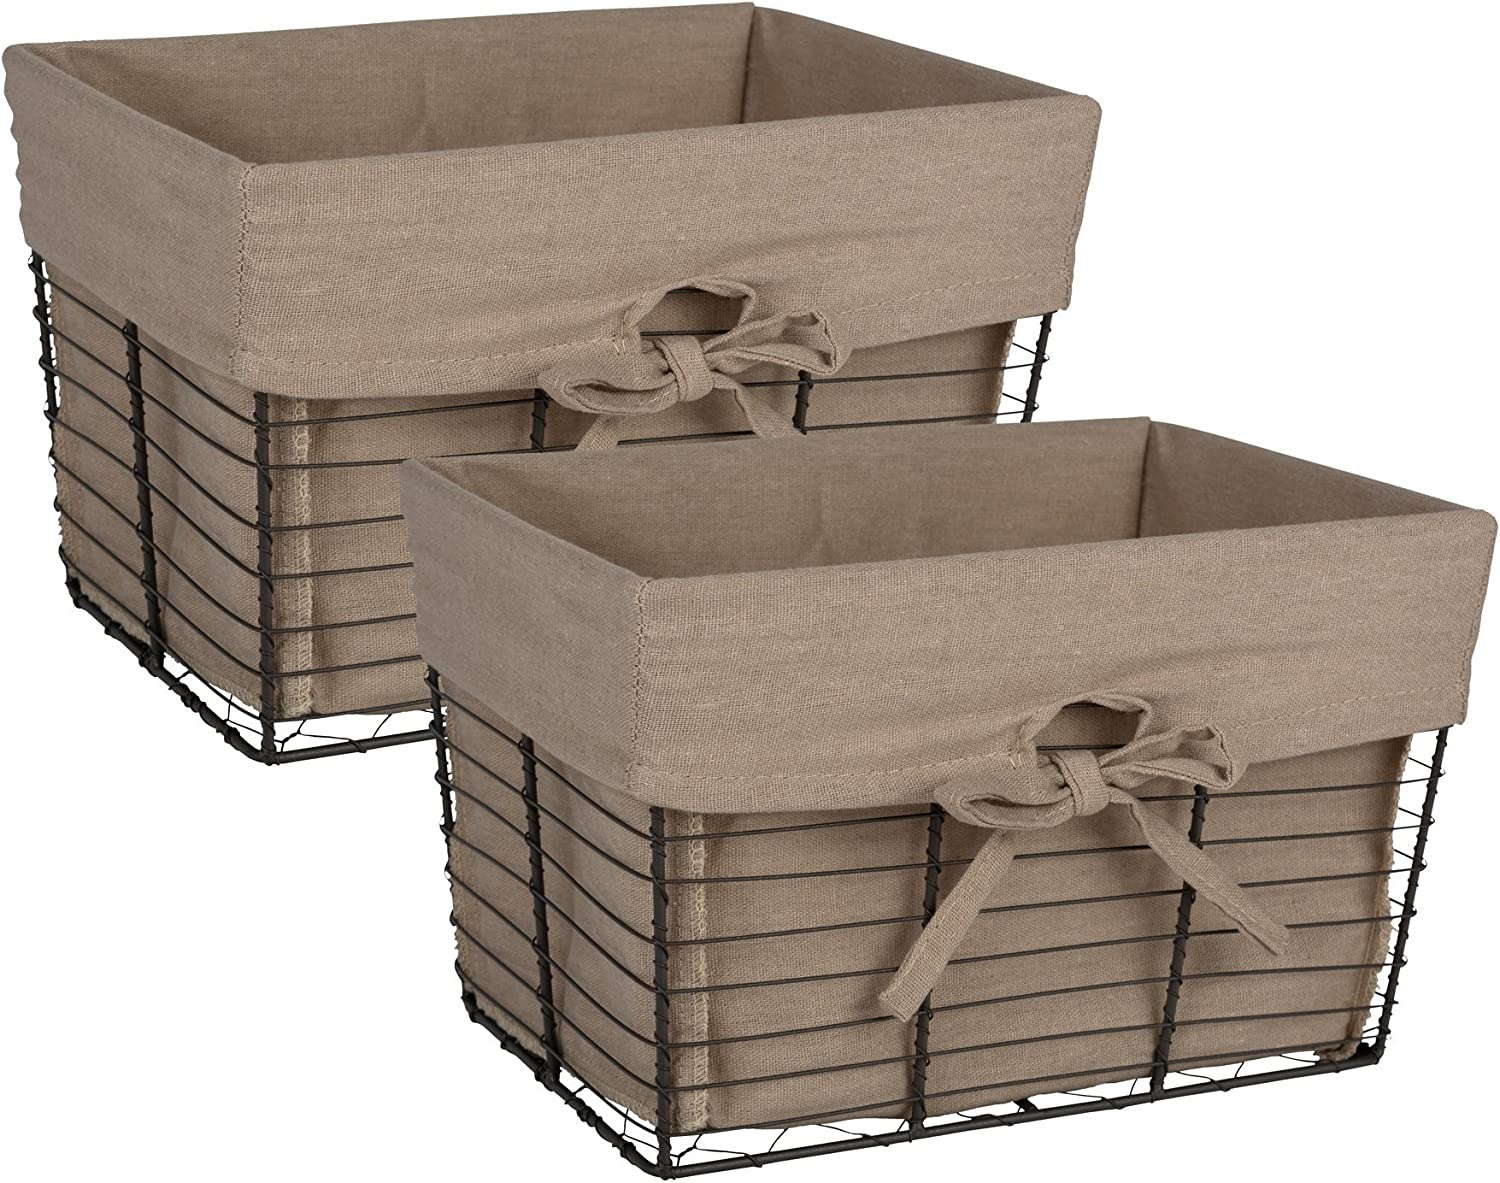 DII Farmhouse Vintage Storage Baskets with Liner, Medium S/2, Taupe 2 Piece